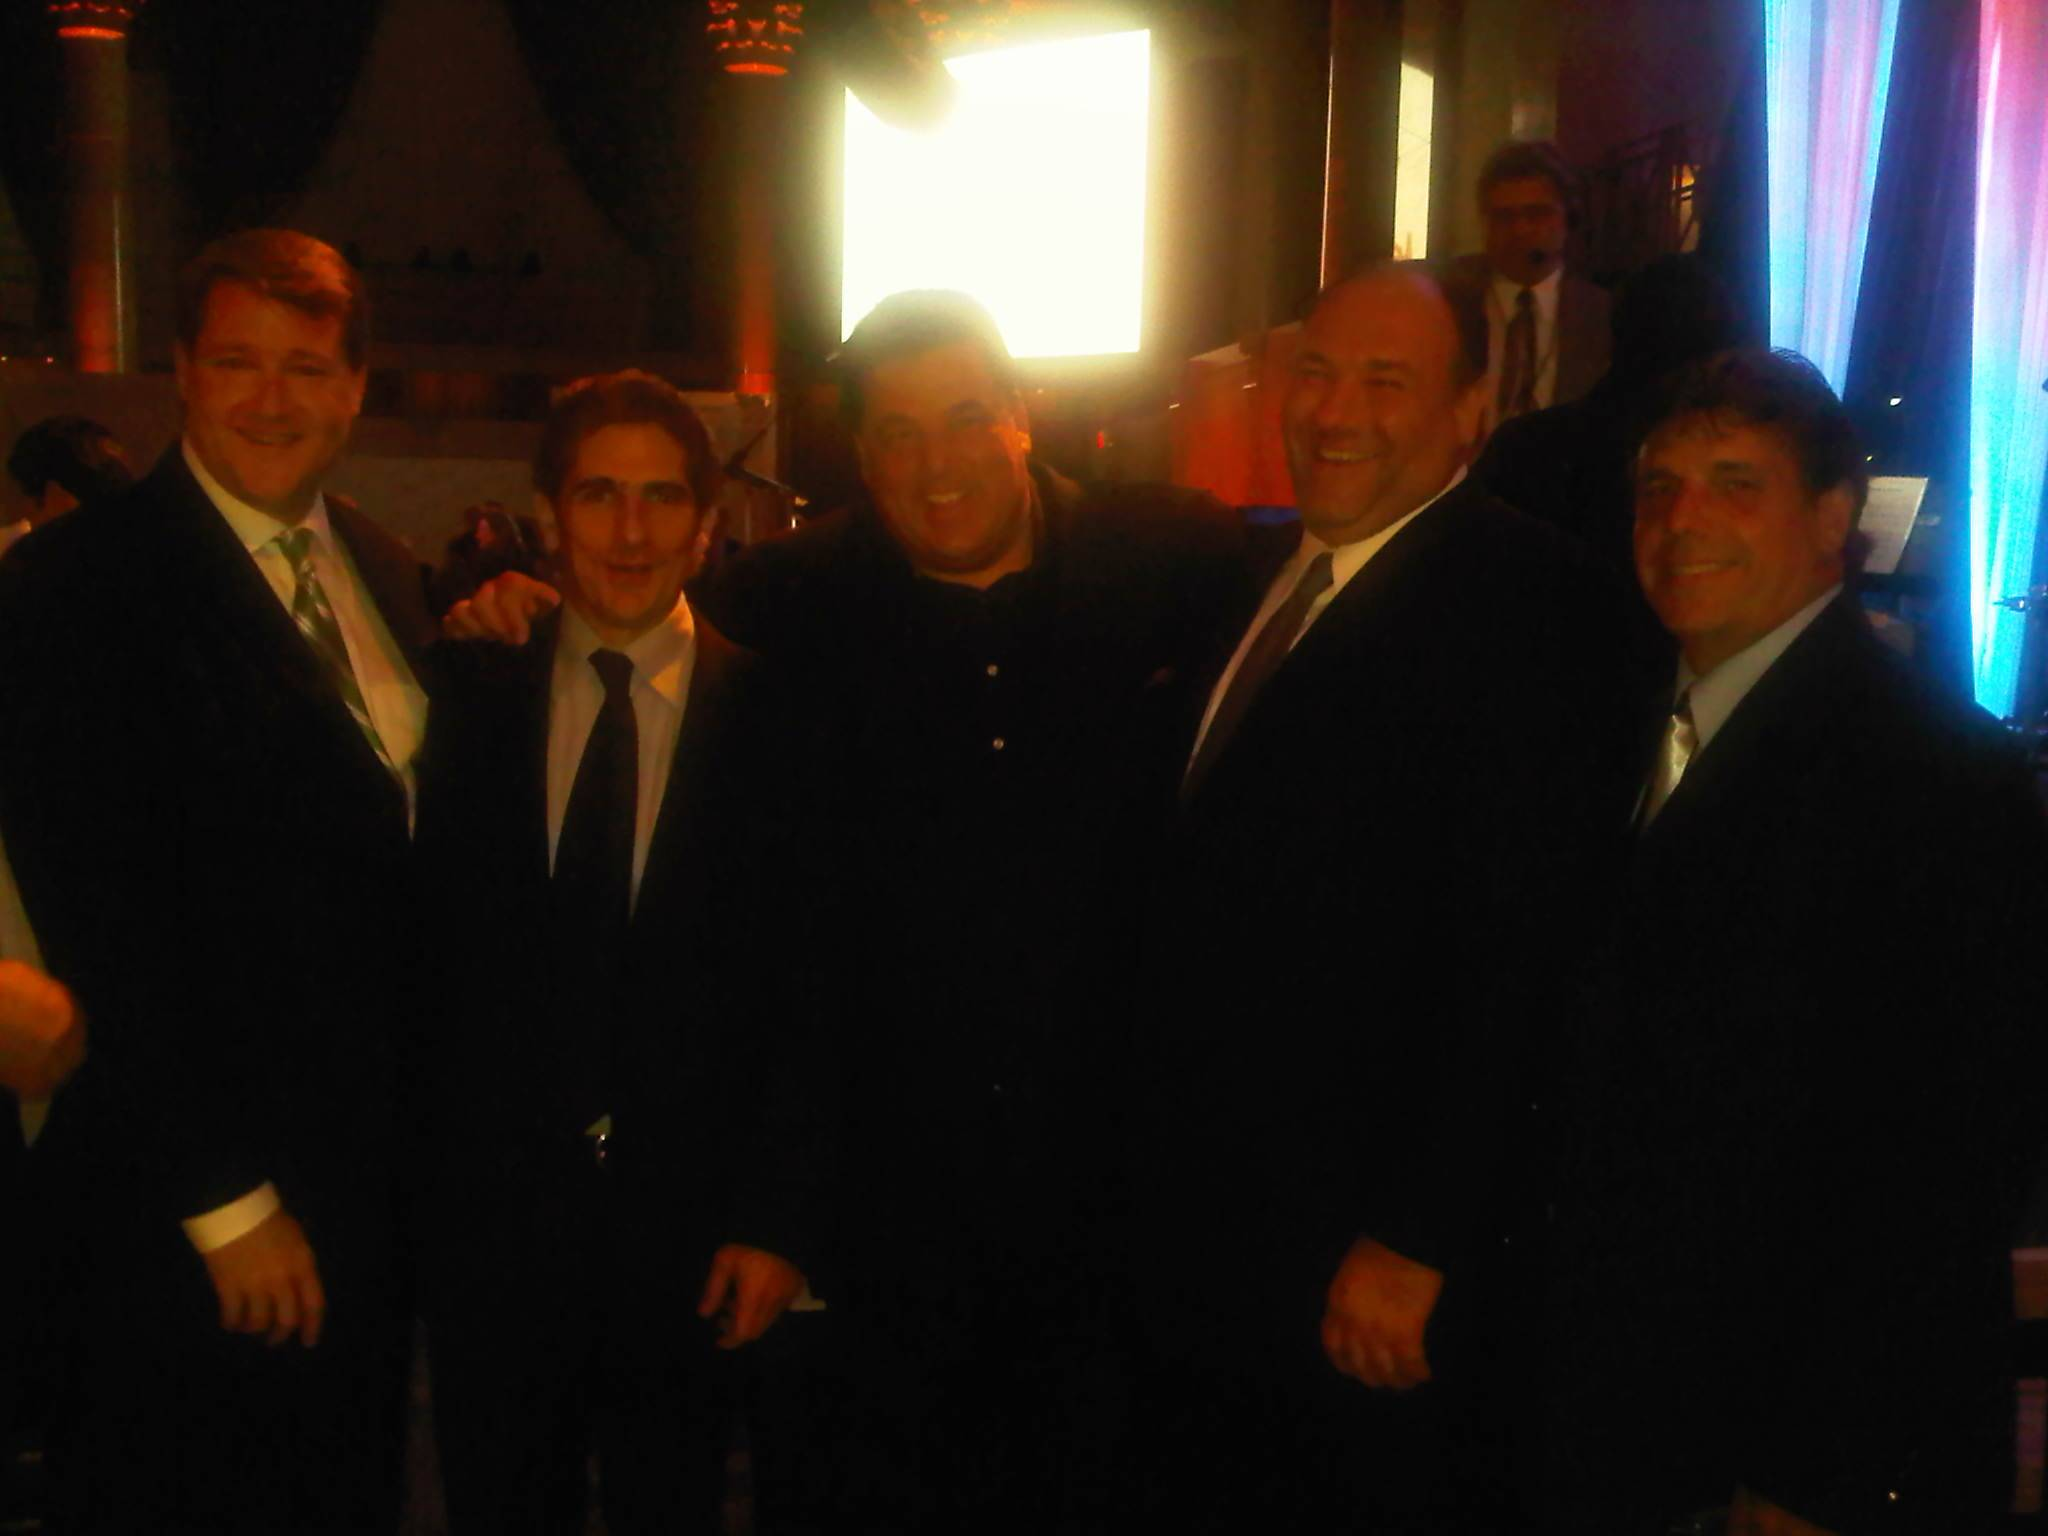 Sean Wolfington & Chuck Aiesi with Sopranos at Tony Bennett dinner